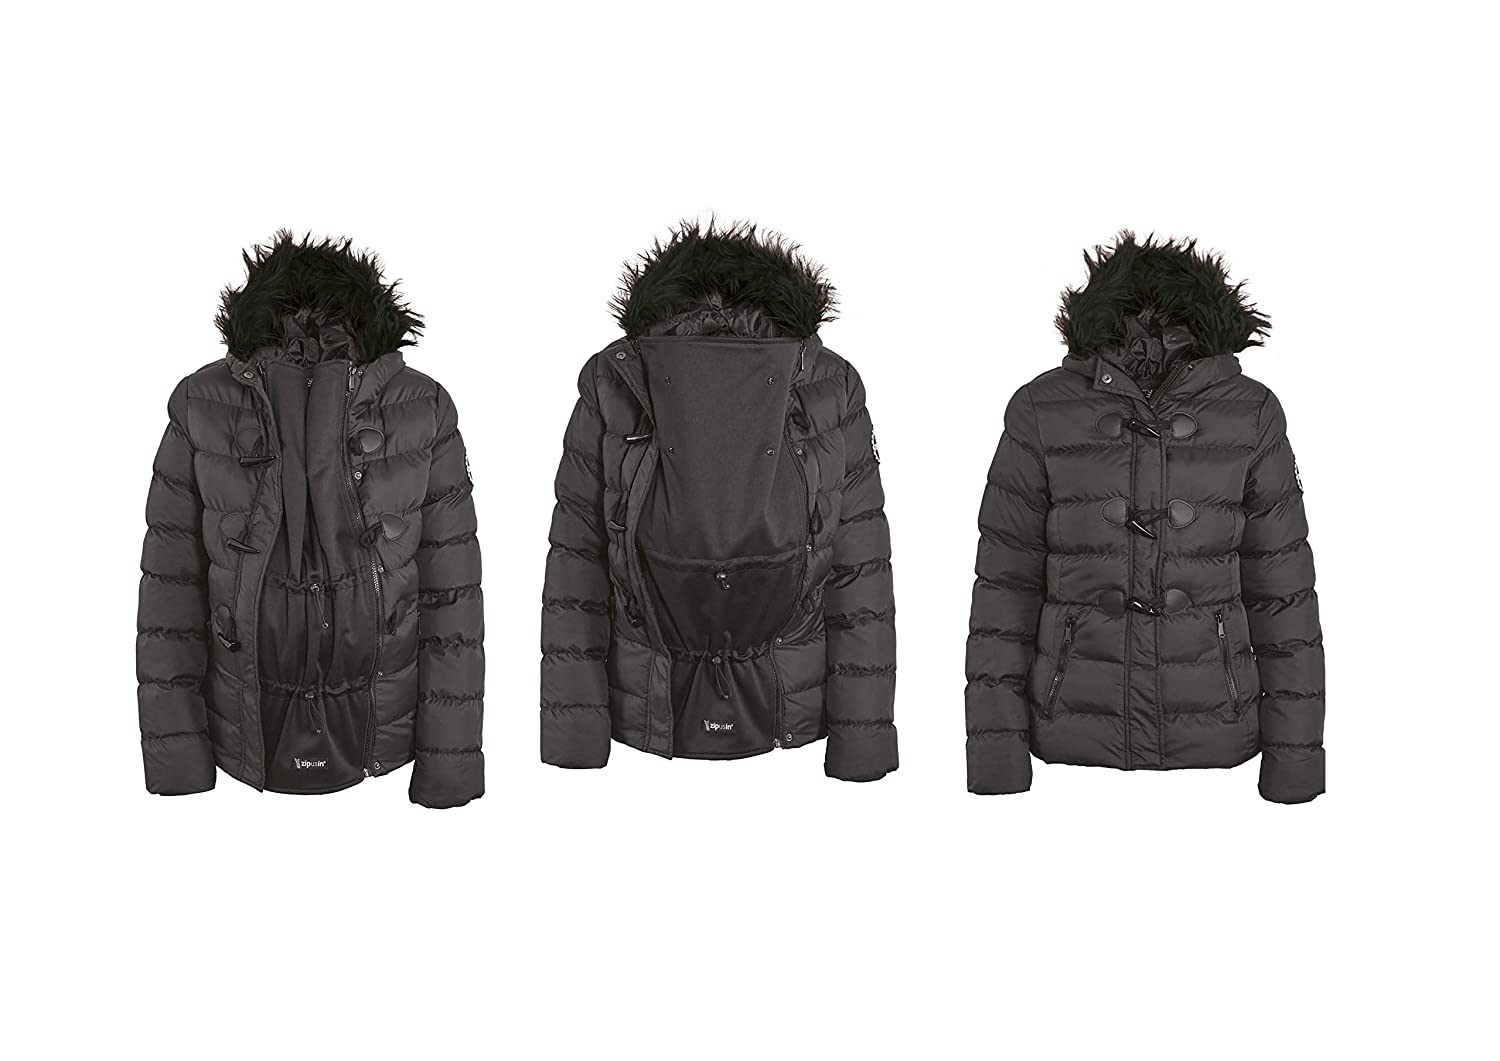 Ladies Winter 3 in 1 Black Hooded Padded Puffa Jacket with Removable Panel for Maternity, Babywearing and Postnatal